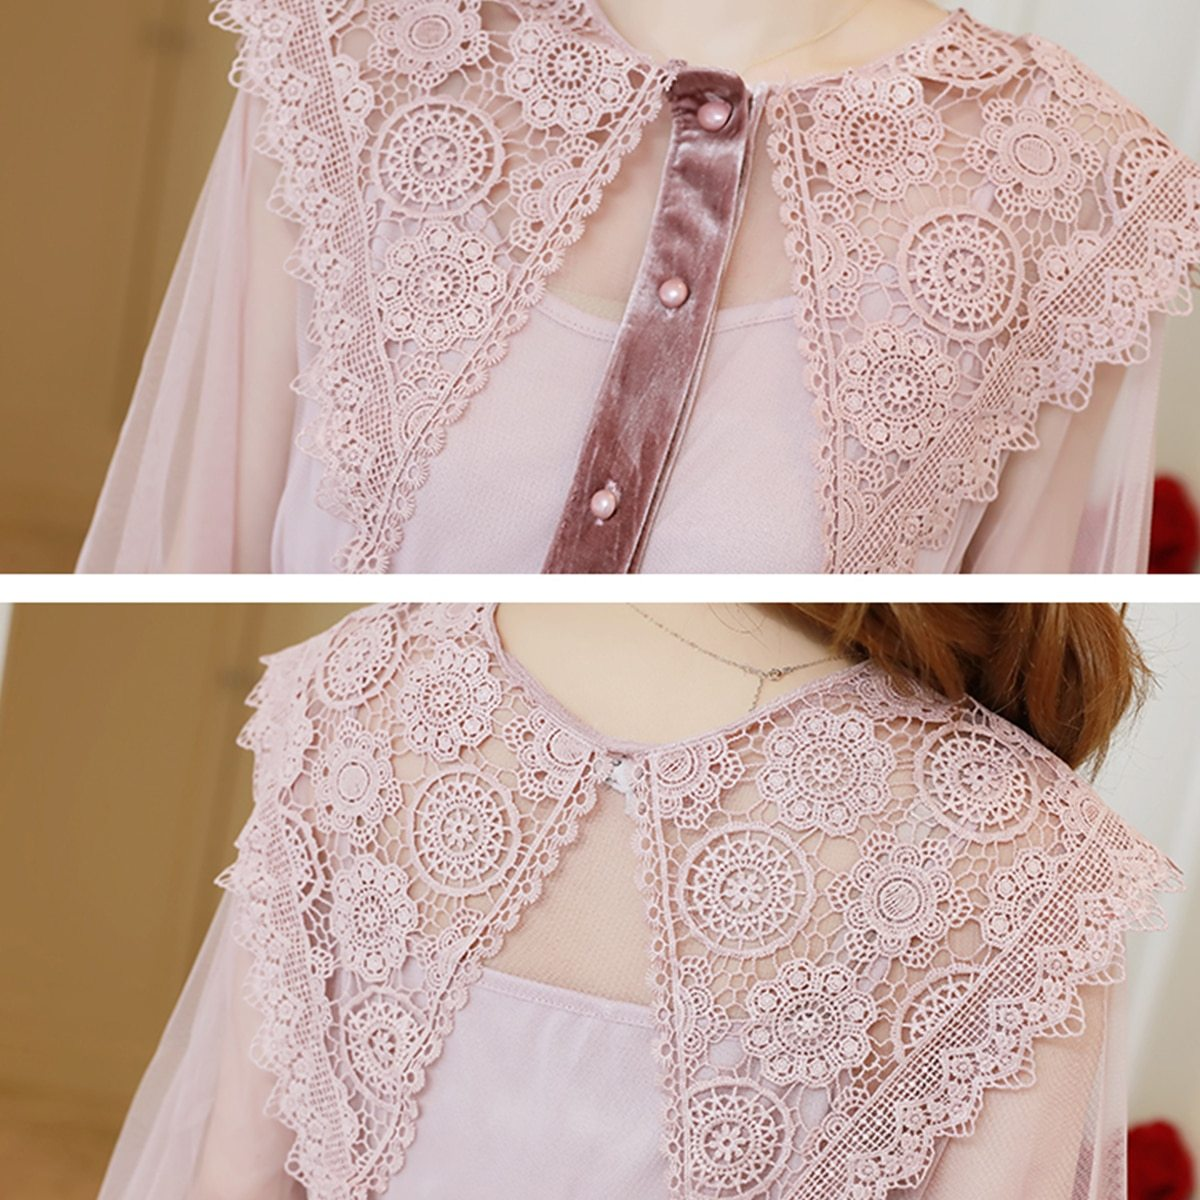 Maternity Dress Solid Color Lace Patchwork Waist Tied Dress image 6